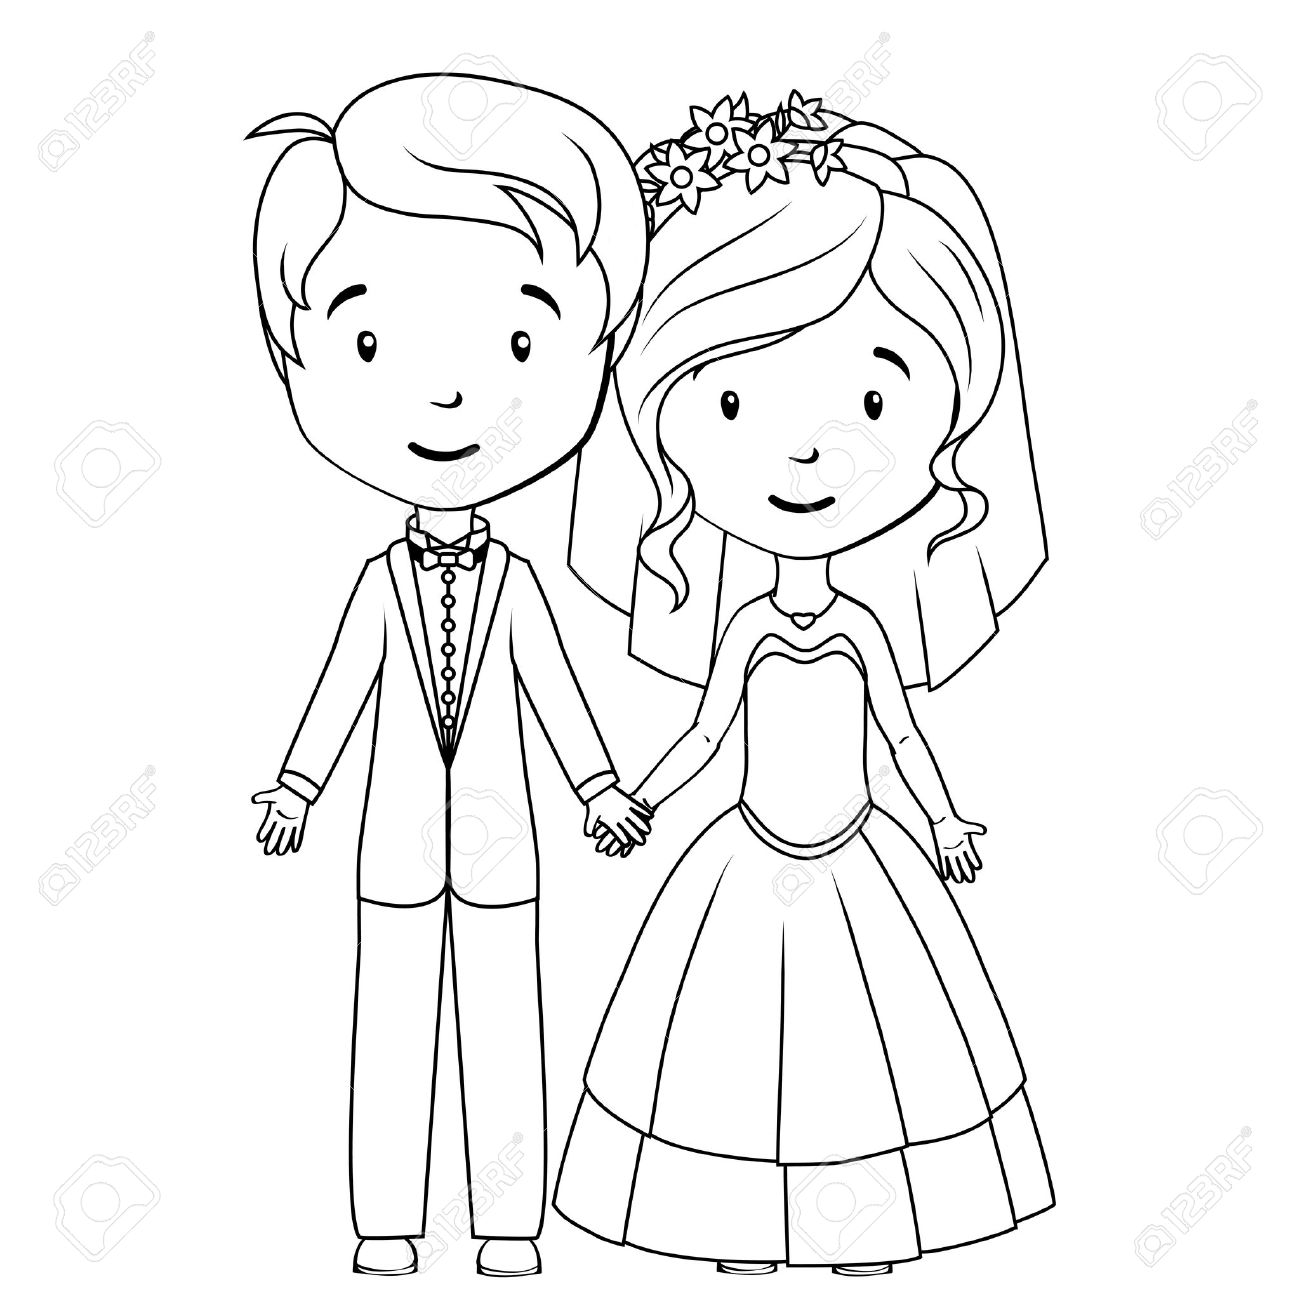 1300x1300 Bride And Groom Coloring Pages Book Cartoon Royalty Free Cliparts